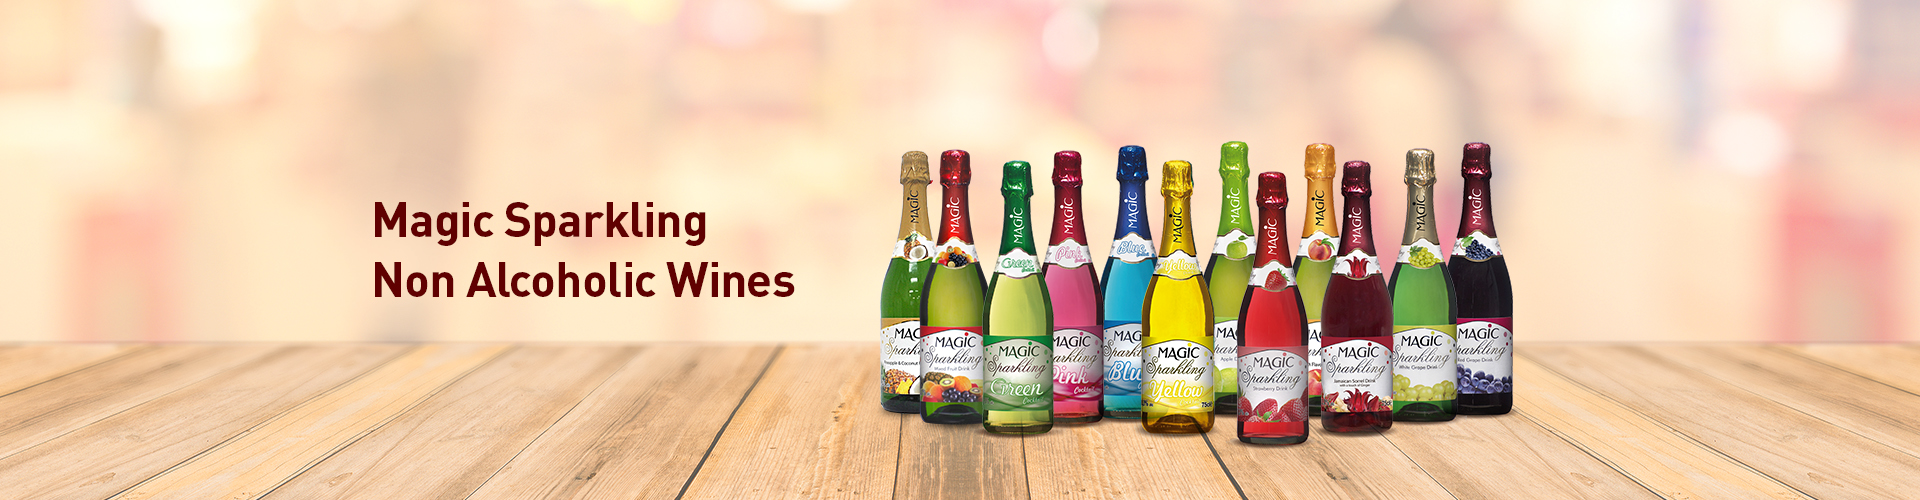 Magic Sparkling Non Alcoholic Wines